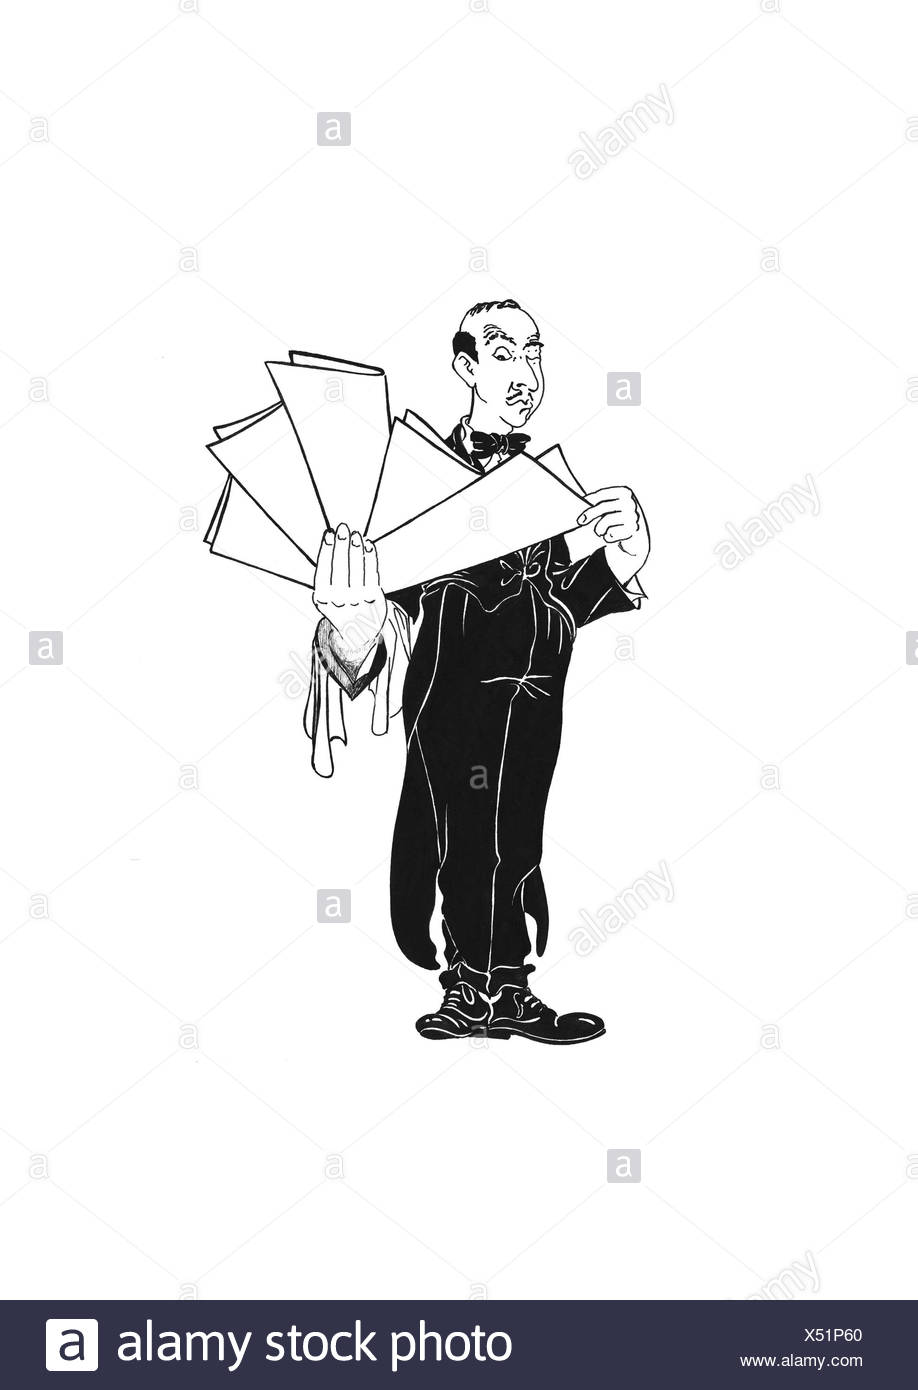 Waiter handing out the menus - Stock Image